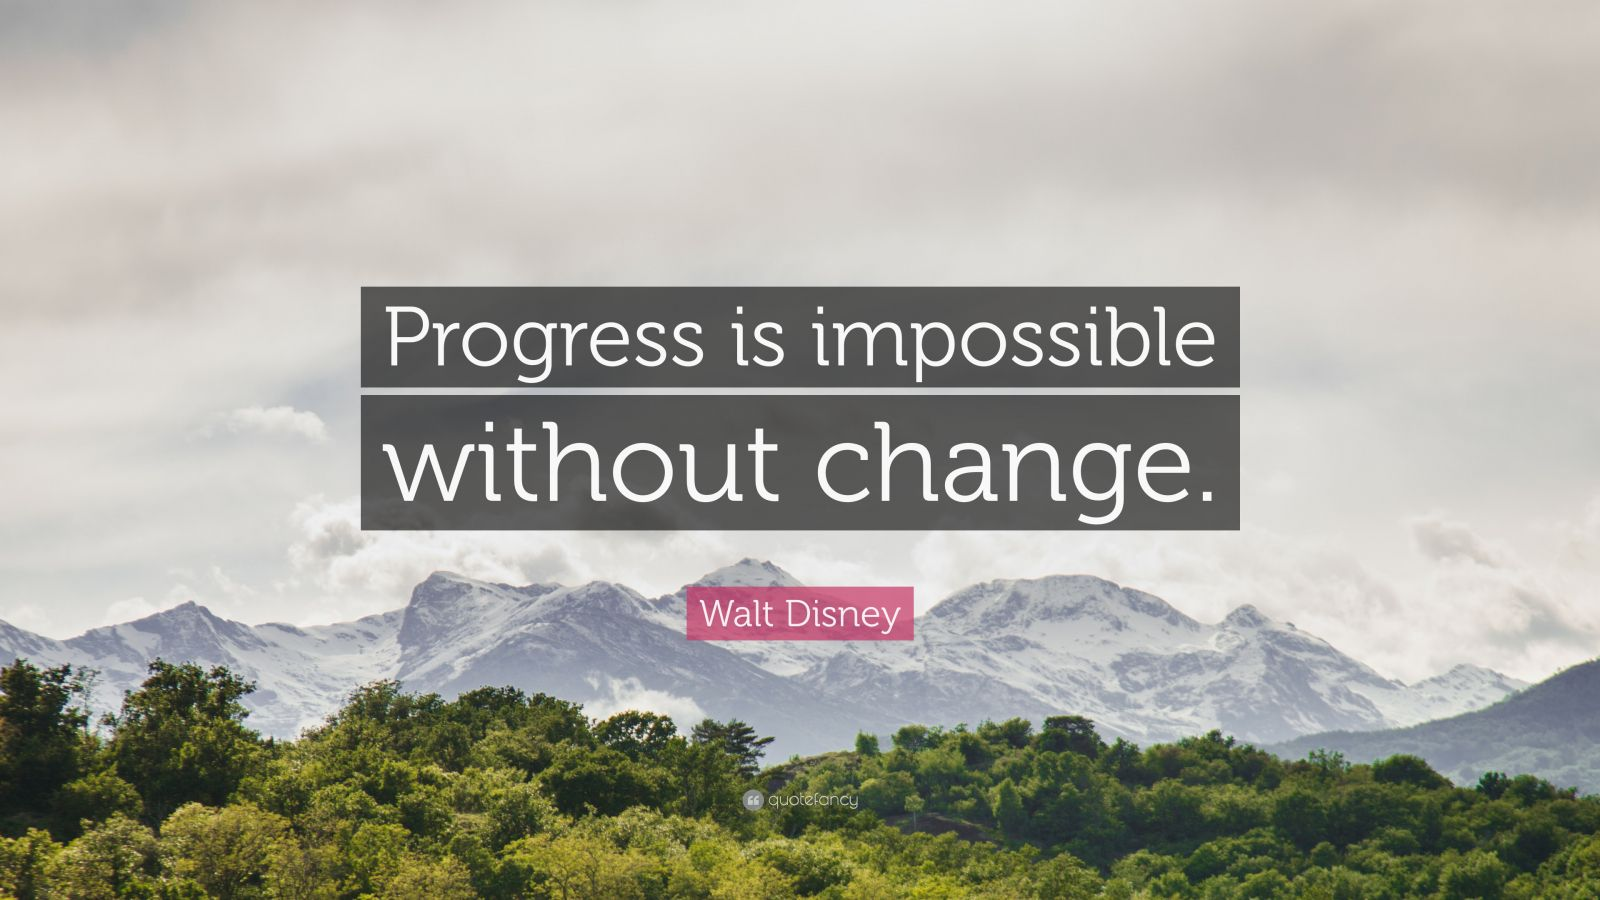 Motivational Wallpapers Without Quotes Walt Disney Quote Progress Is Impossible Without Change